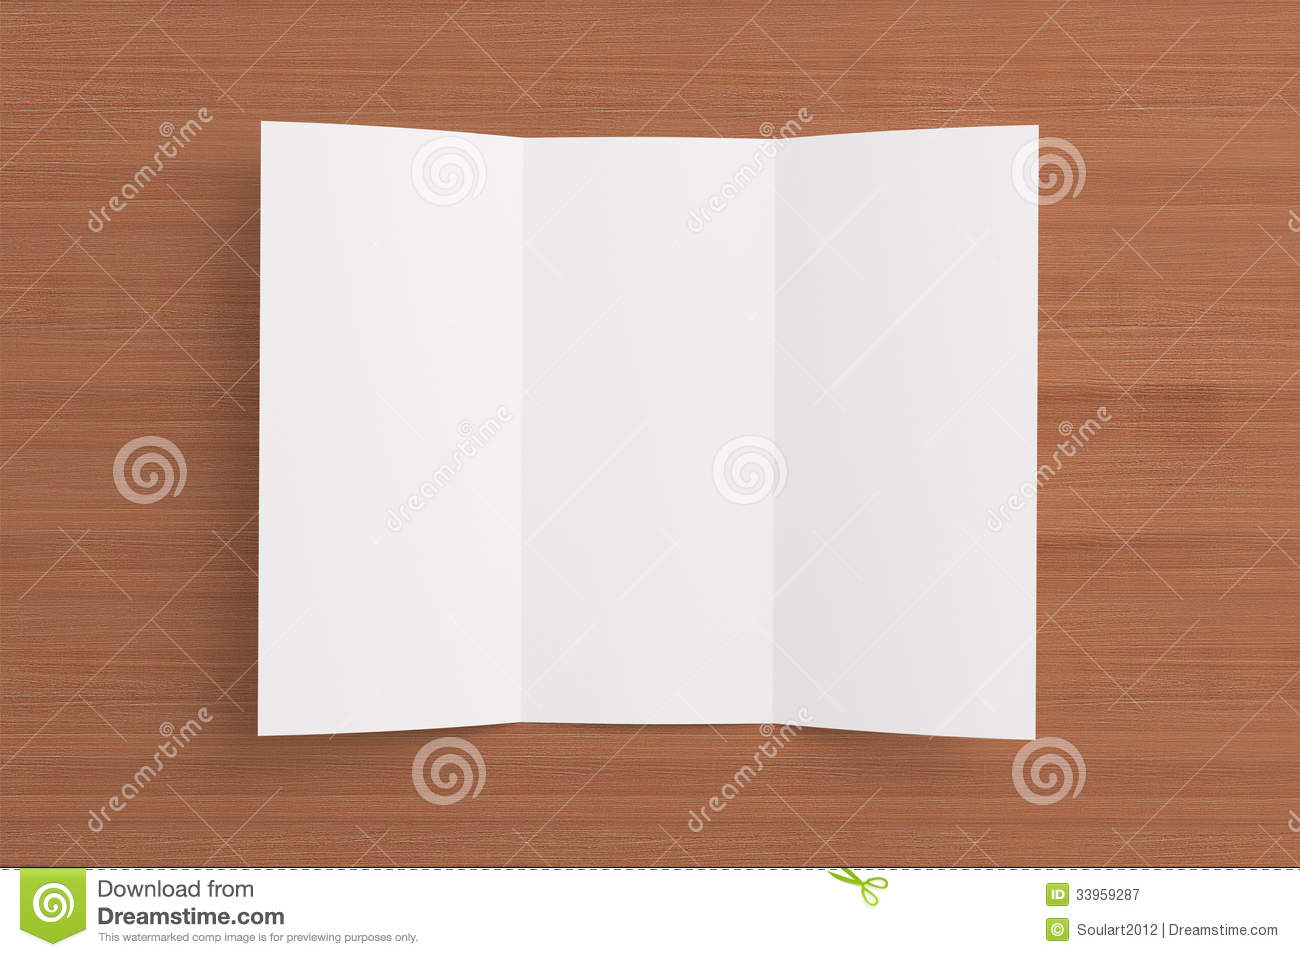 Blank Tri Fold Brochure On Wooden Background Royalty Free – Free Blank Tri Fold Brochure Templates